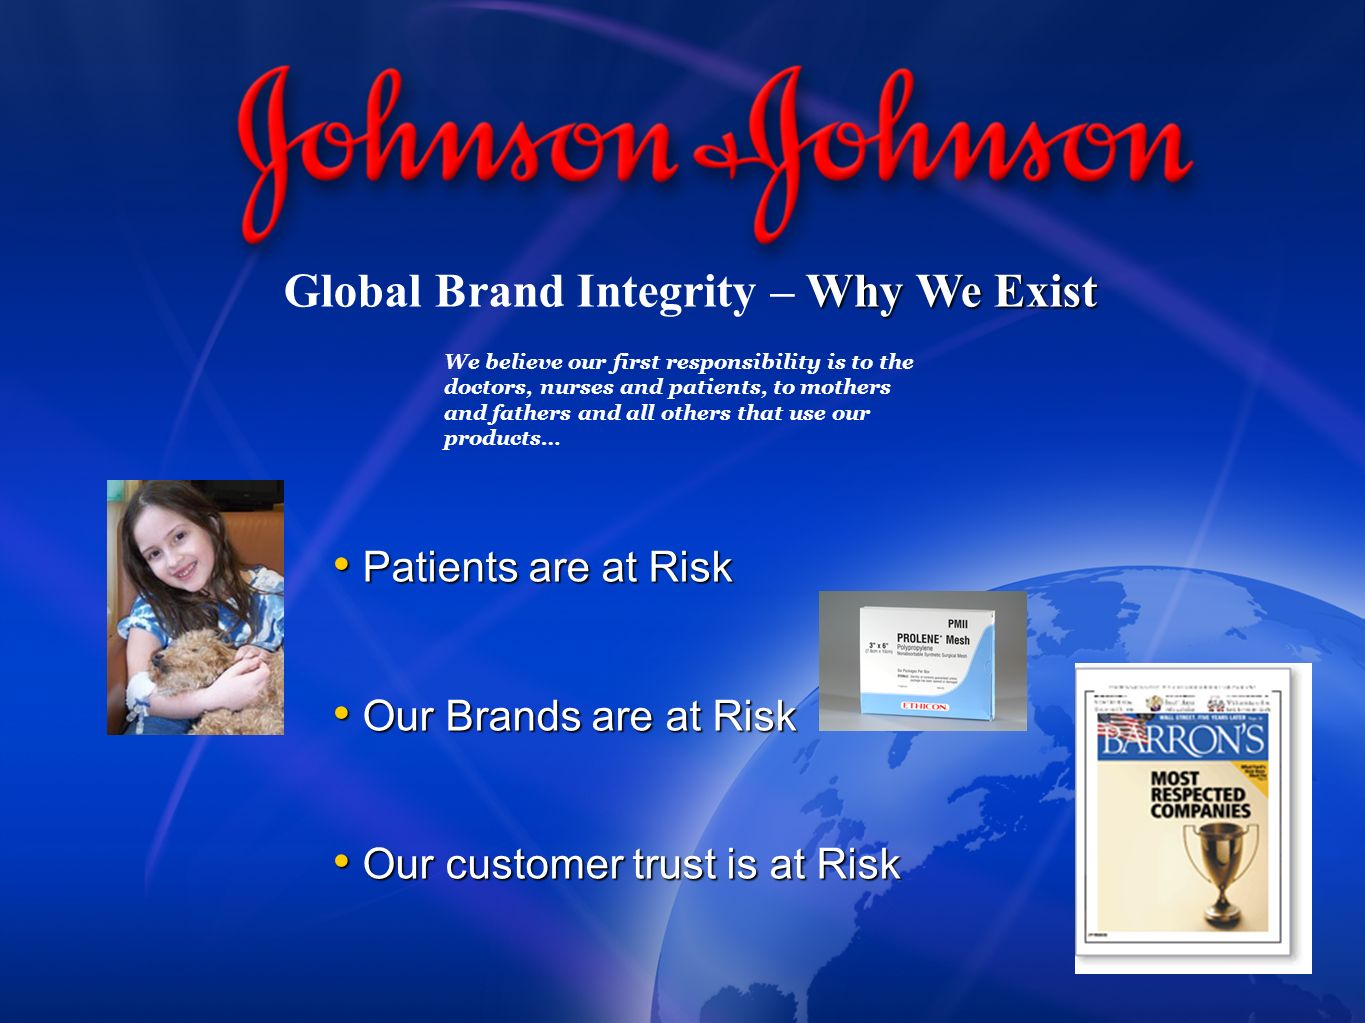 Why We Exist Global Brand Integrity – Why We Exist Patients are at Risk Patients are at Risk Our Brands are at Risk Our Brands are at Risk Our customer trust is at Risk Our customer trust is at Risk We believe our first responsibility is to the doctors, nurses and patients, to mothers and fathers and all others that use our products…